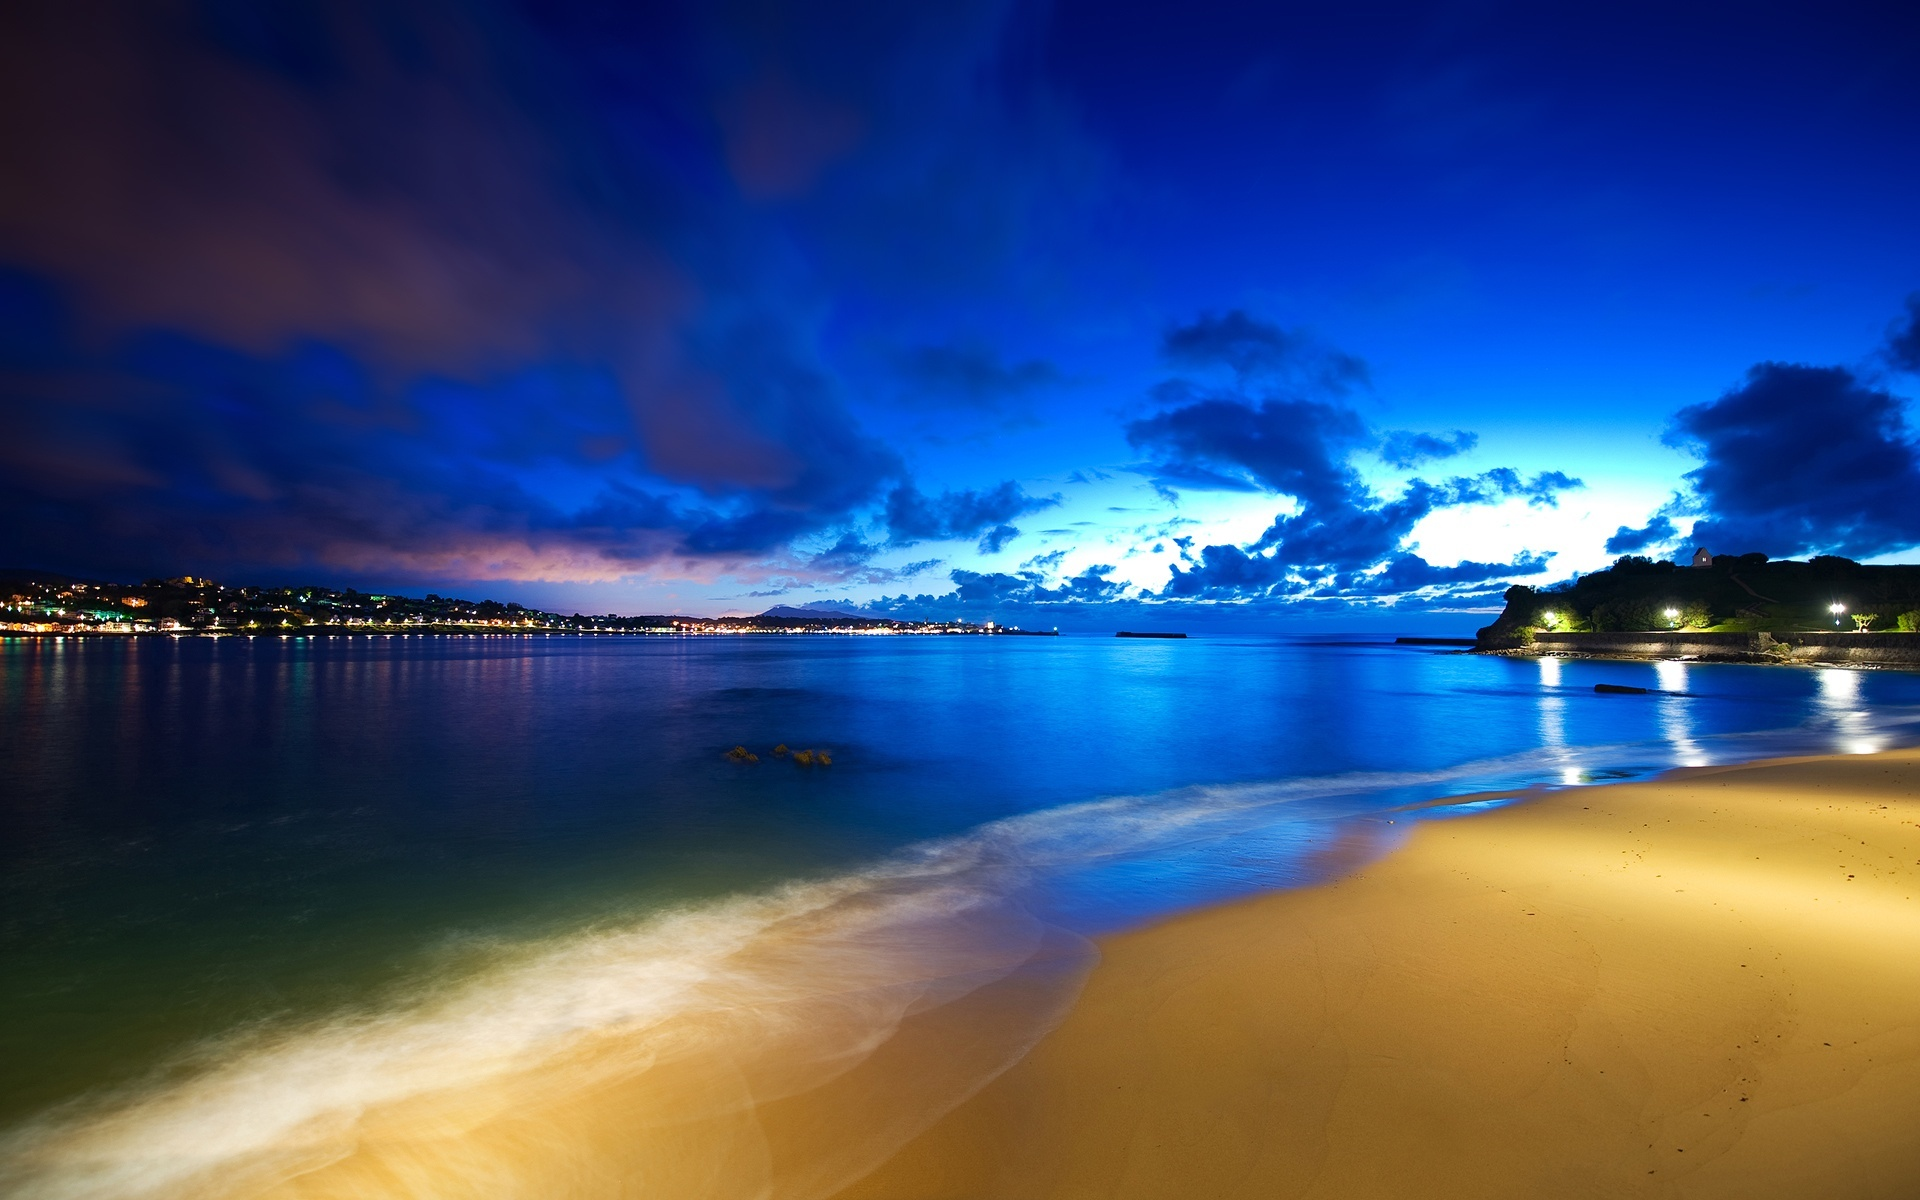 free-desktop-wallpapers-beach-backgrounds | red beach advisors